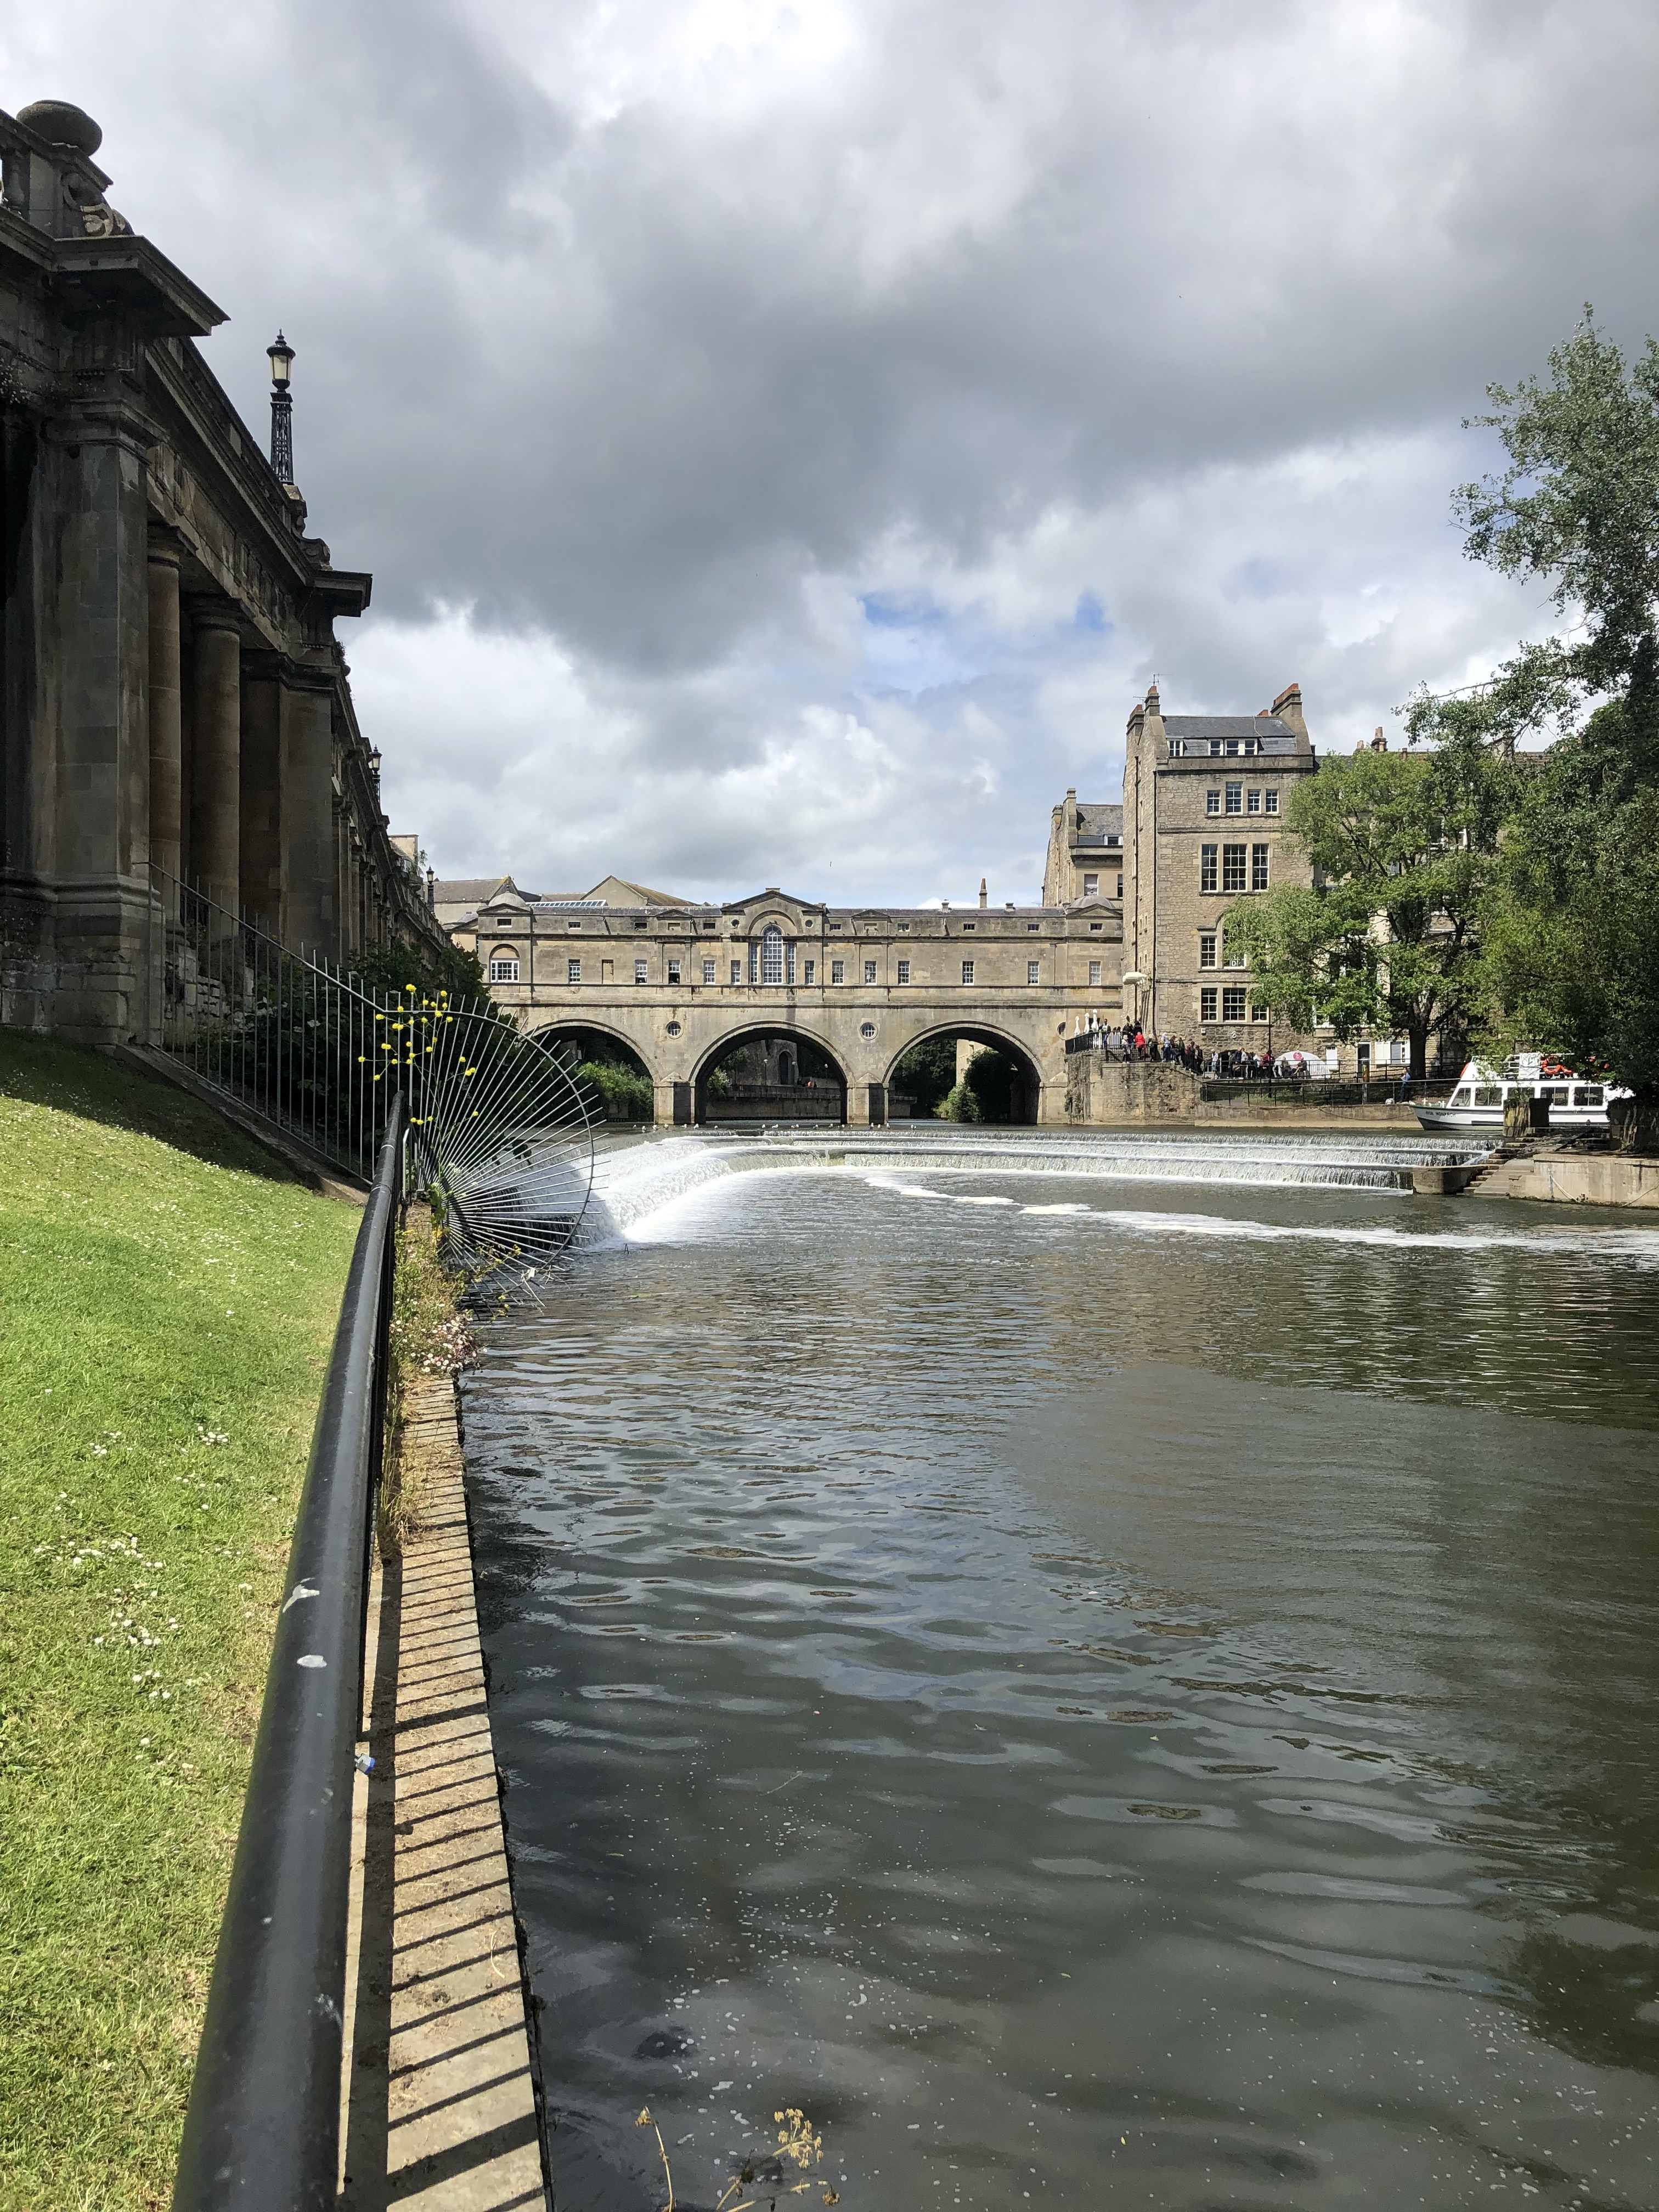 Pictured is a lightly flowing river cutting through a park on a clear summer day. In the middle of the picture is a vaulted bridge going over the river. The sky is fairly cloudy, but the day is still quite sunny